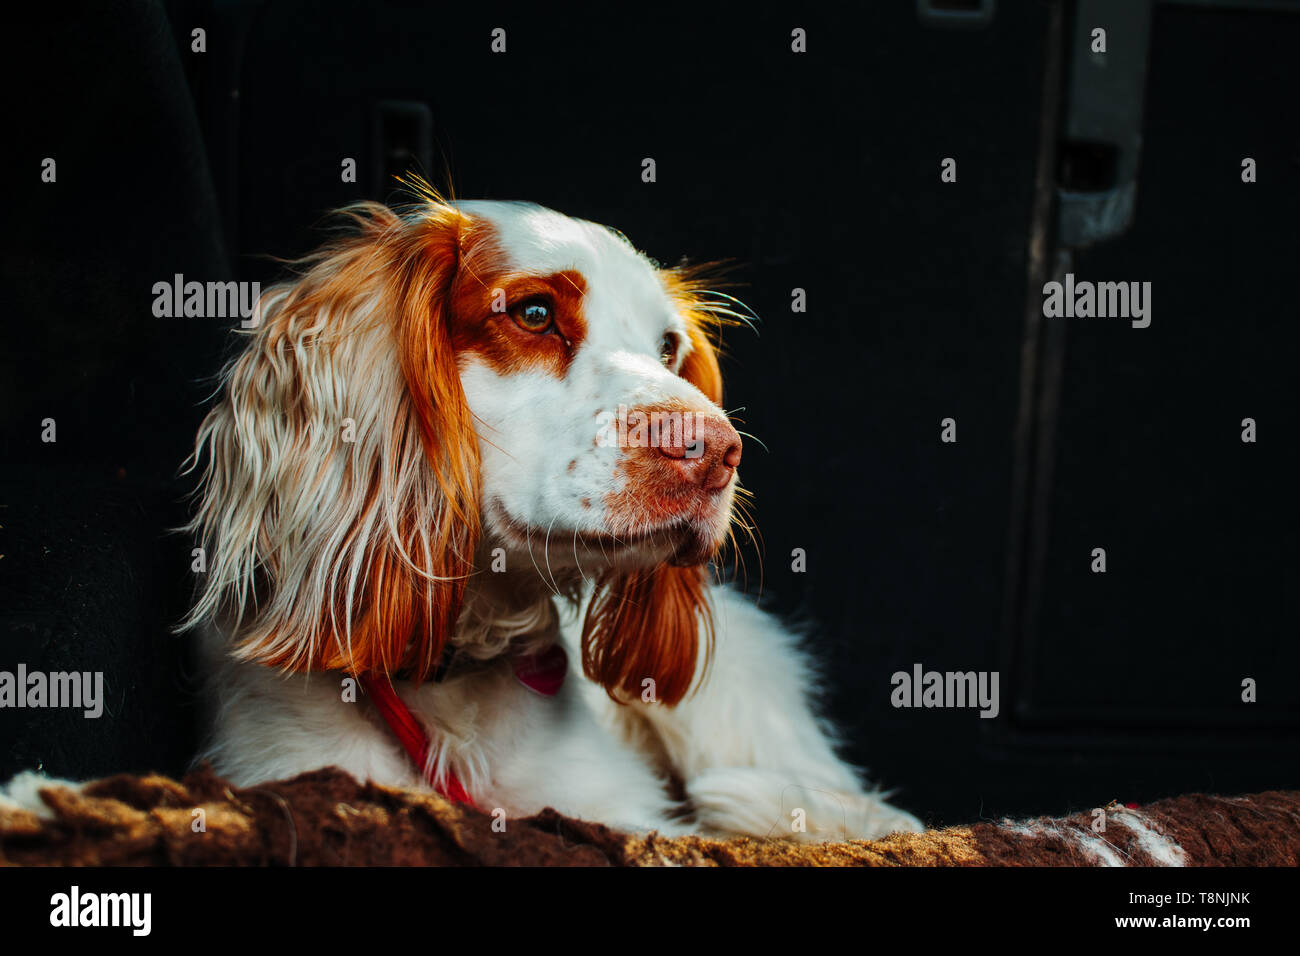 cute dog in car on a red lead with long ears - Stock Image